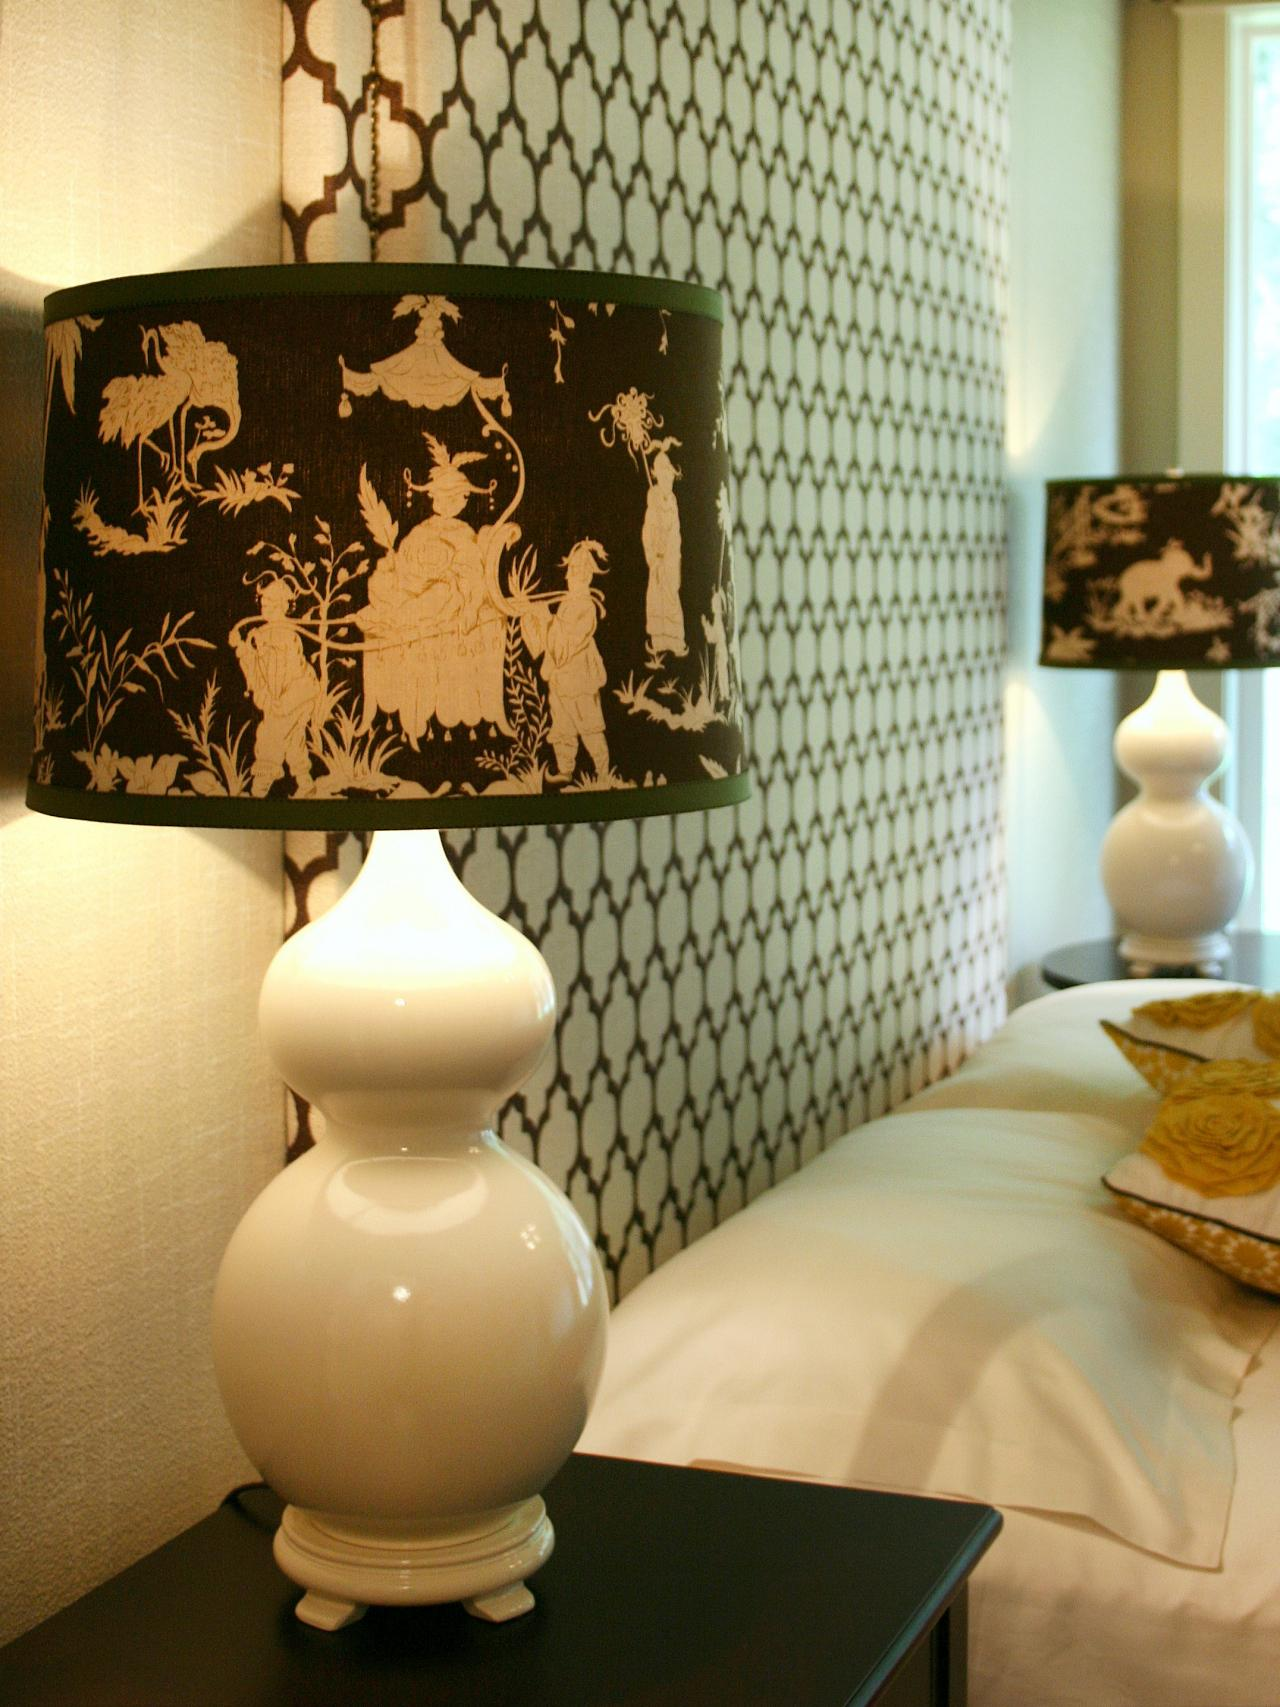 White Lamp With Trendy Brown Patterned Lampshade - Custom Fabric-Covered Lampshade HGTV